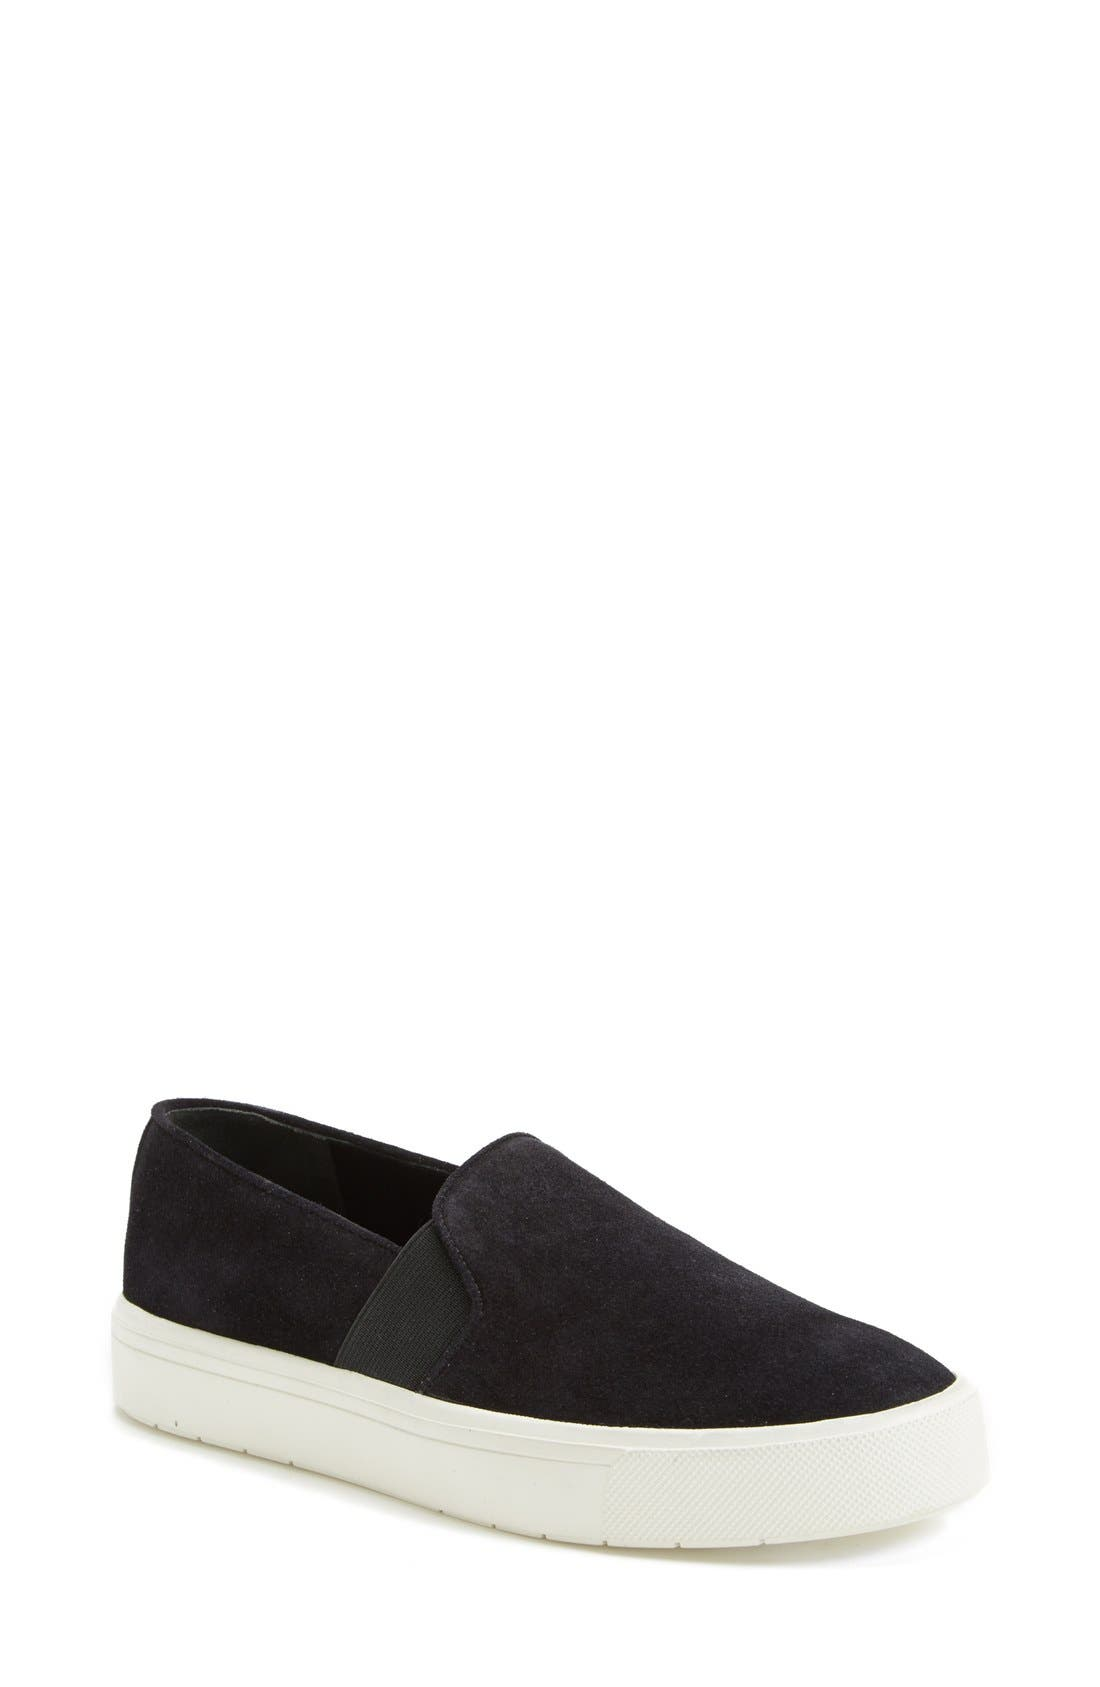 Alternate Image 1 Selected - Vince 'Berlin 6' Slip-On Suede Sneaker (Women)